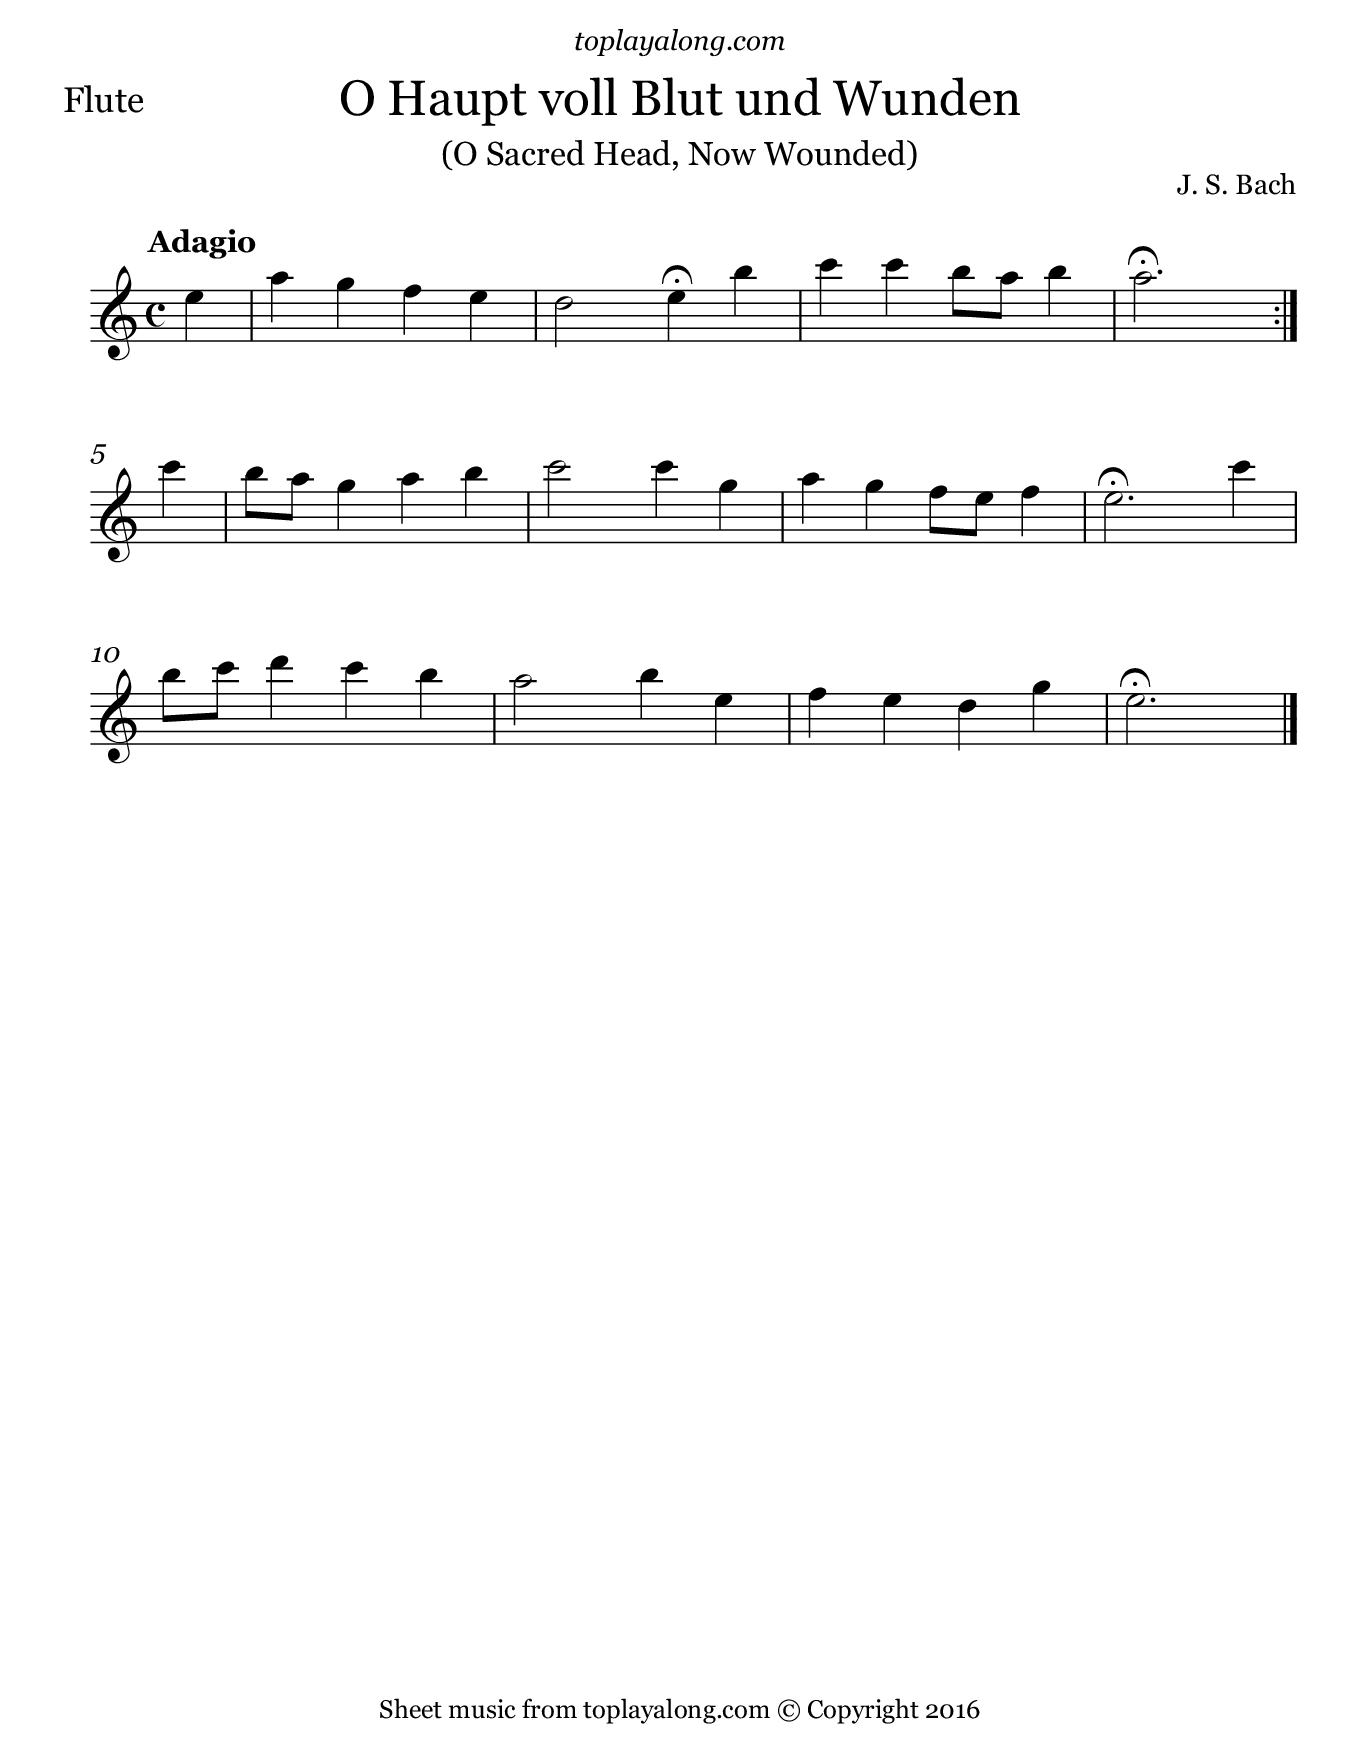 O Sacred Head, Now Wounded by J. S. Bach. Sheet music for Flute, page 1.